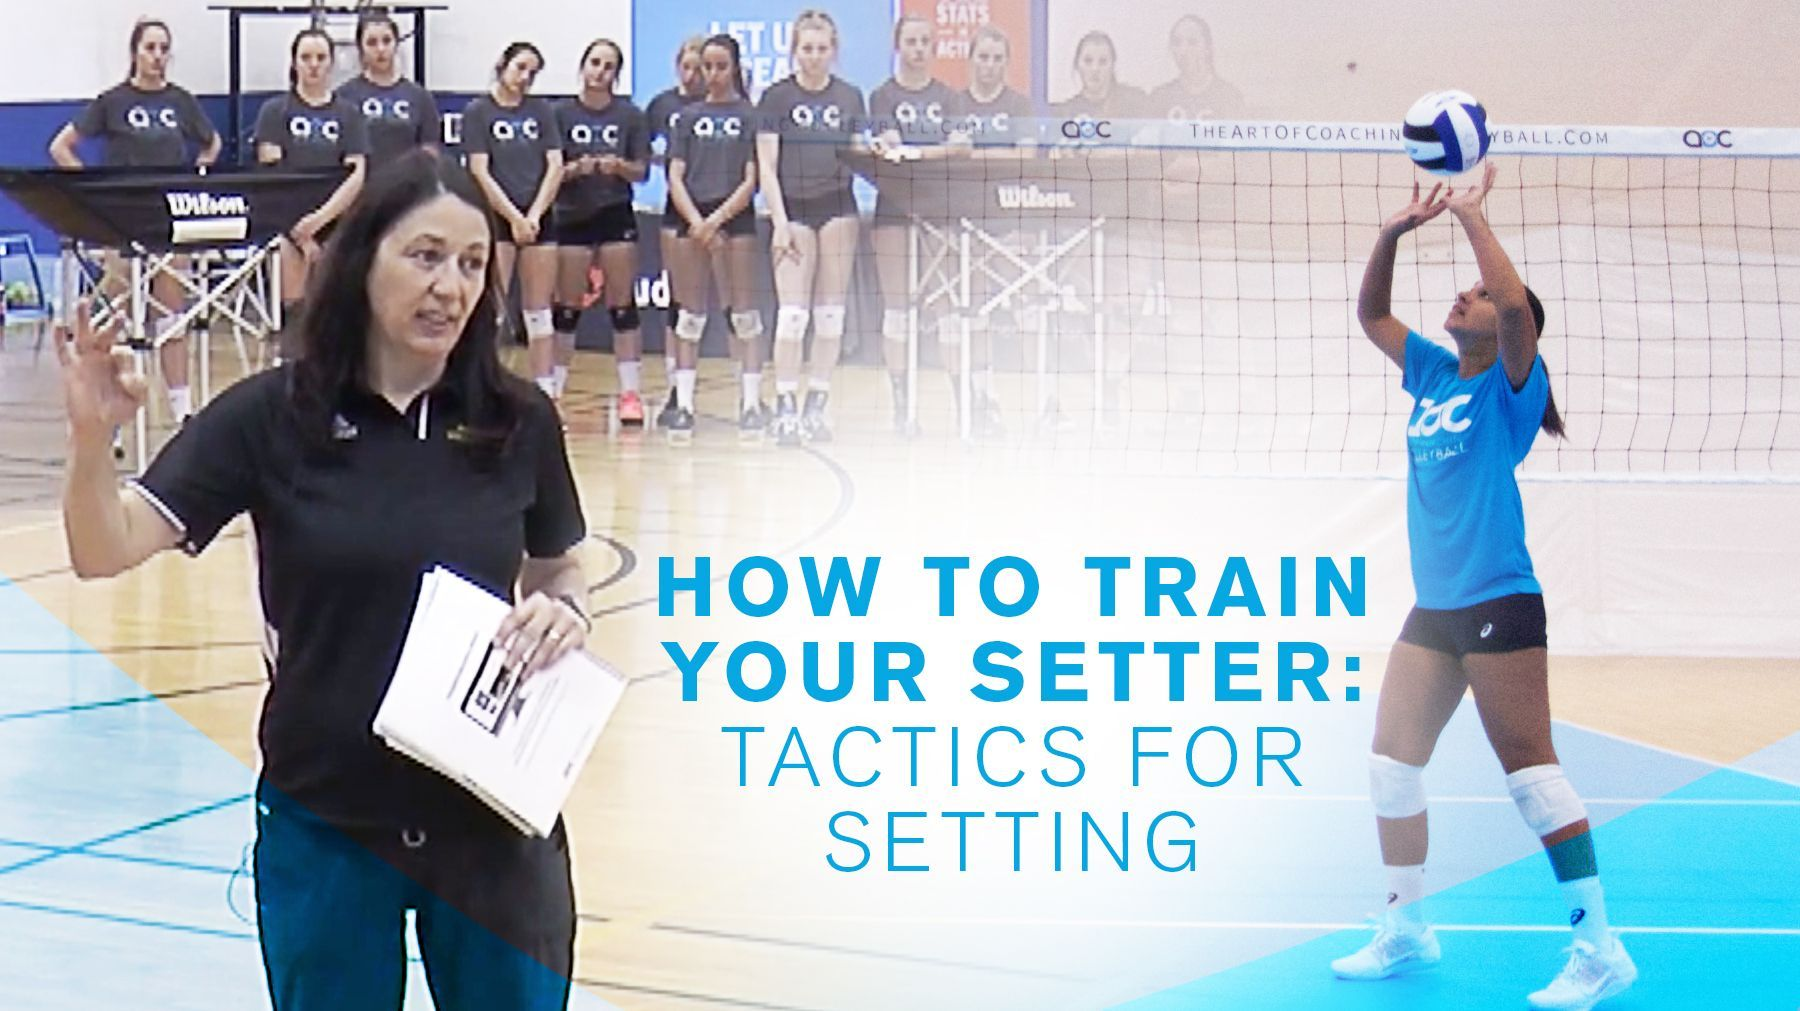 Best Volleyball Matches How To Train Your Setter Tactics For Setting The Art Of Coaching Volleyball In 2020 Volleyball Workouts Volleyball Practice Youth Volleyball